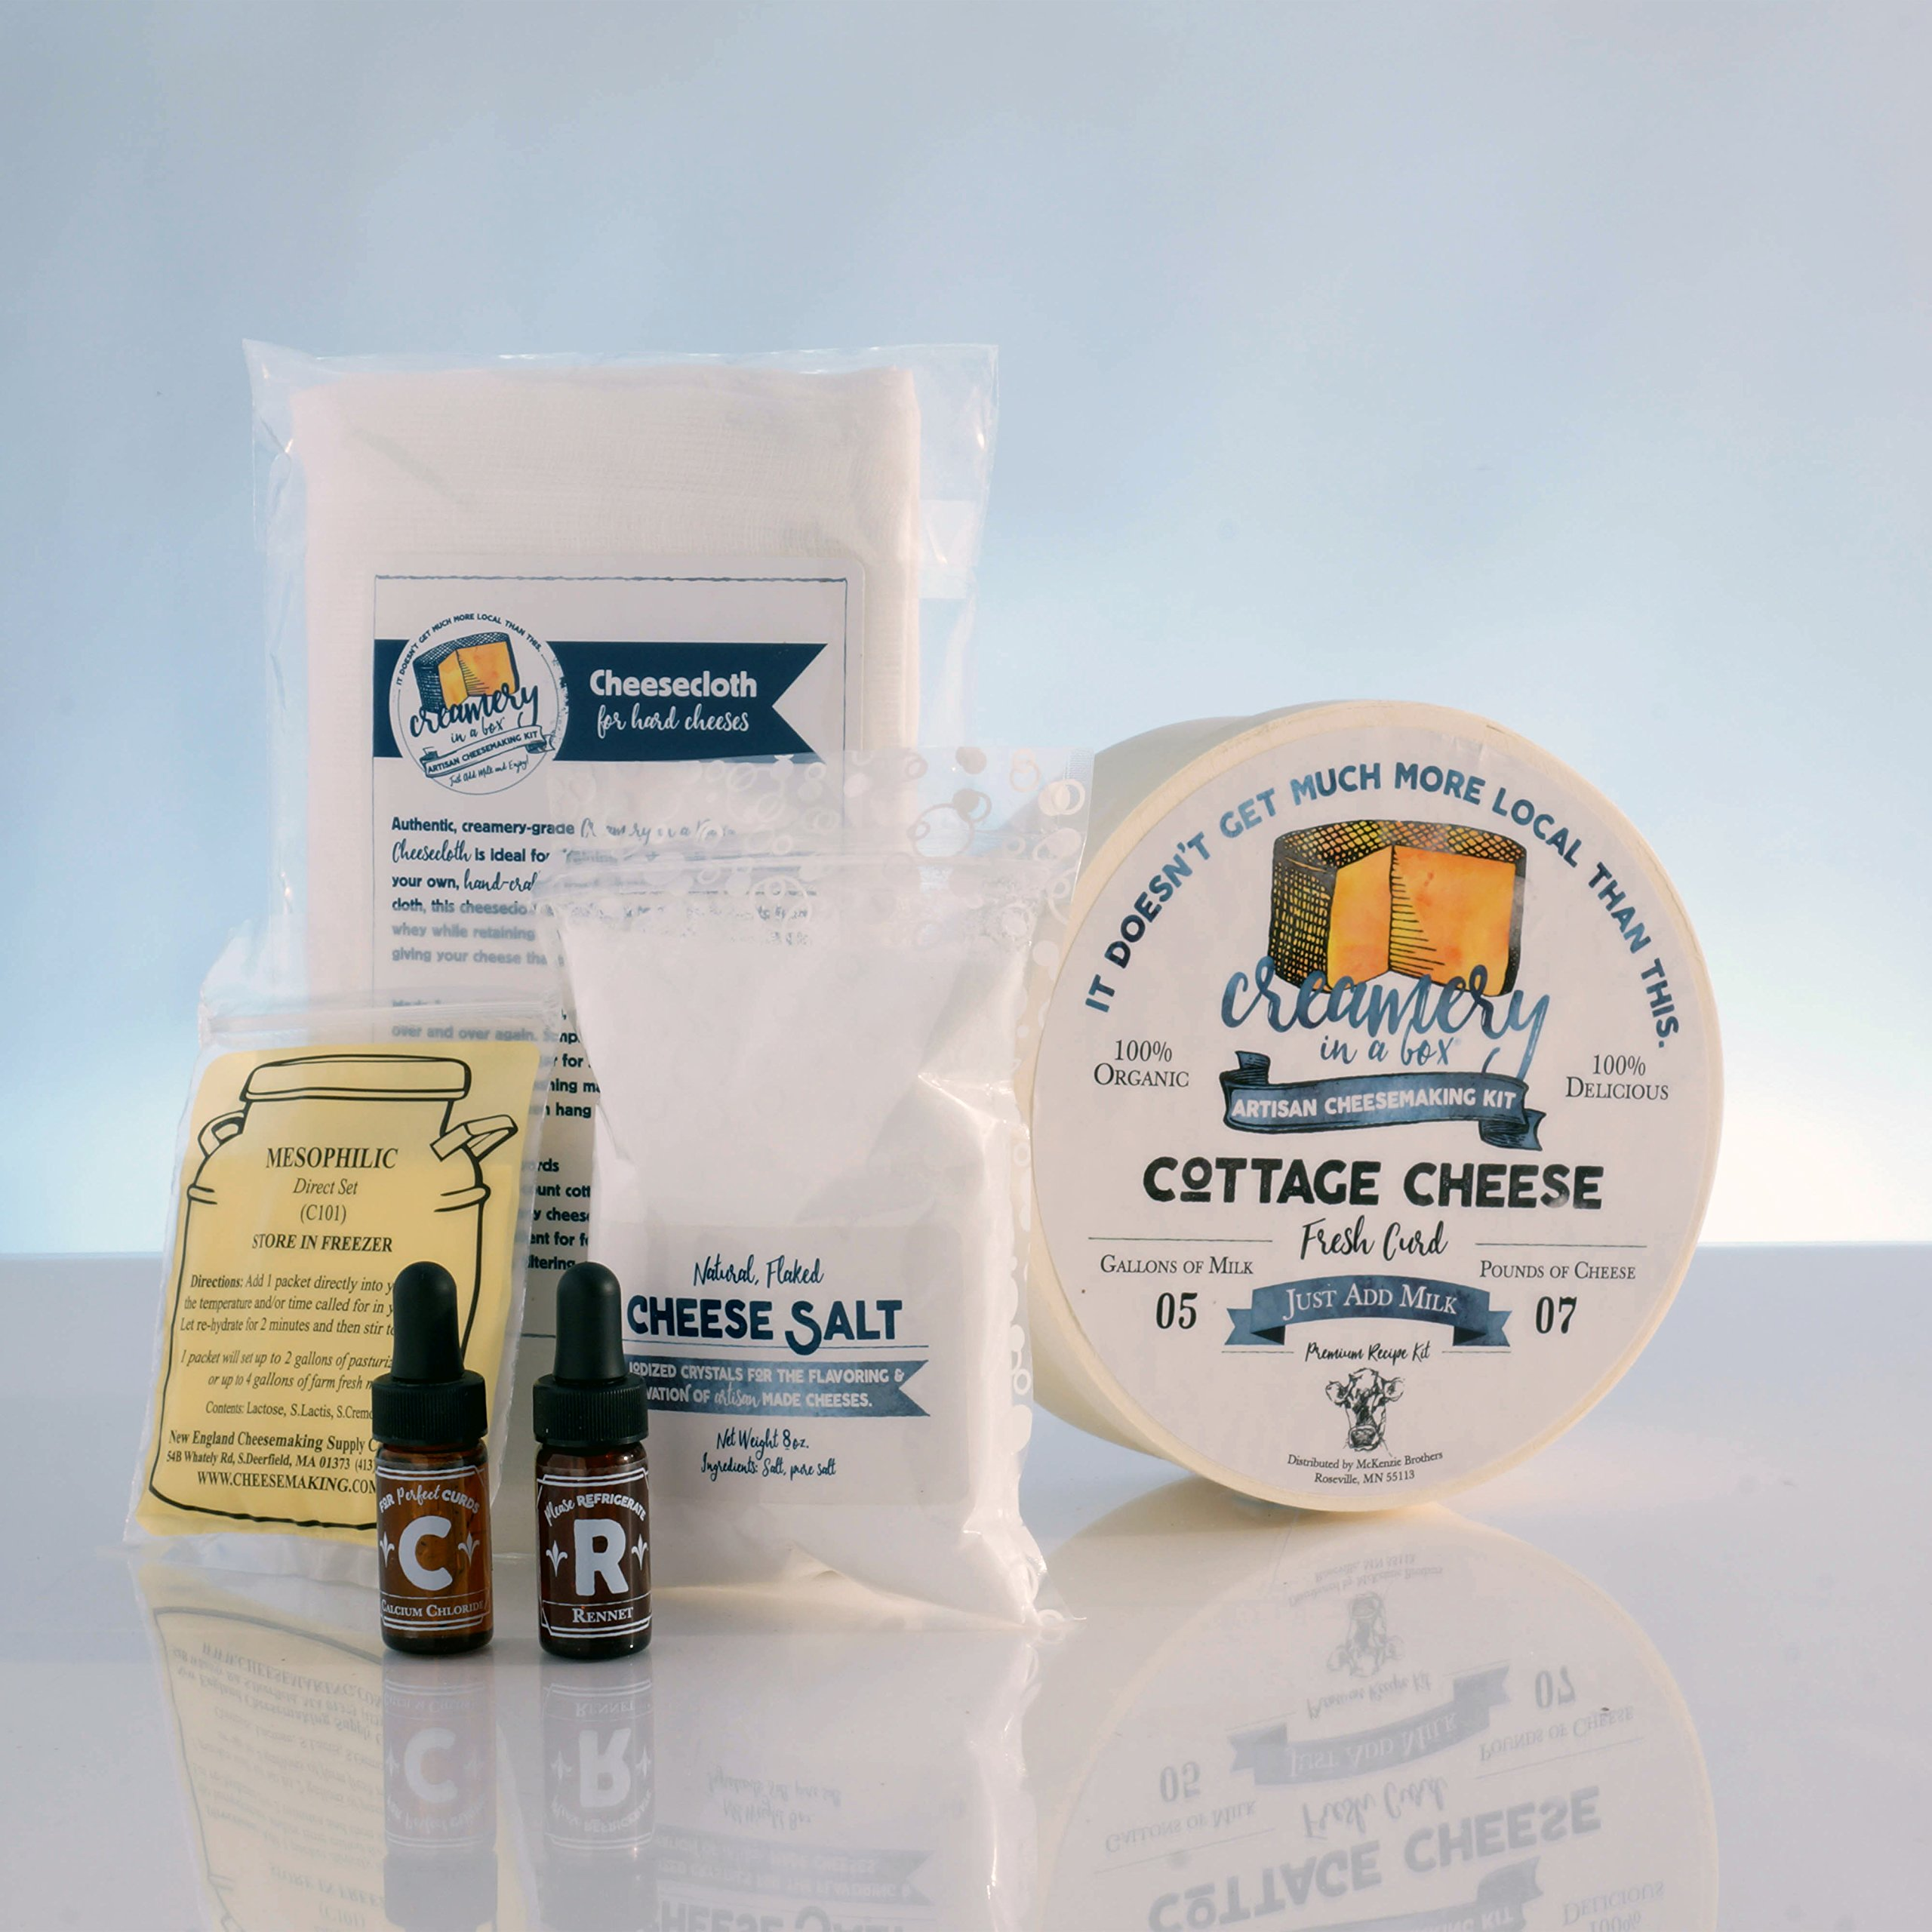 Creamery In A Box Fresh Cottage Cheesemaking Recipe Kit - Ingredients For Making 5 Pounds Of Homemade Cheese